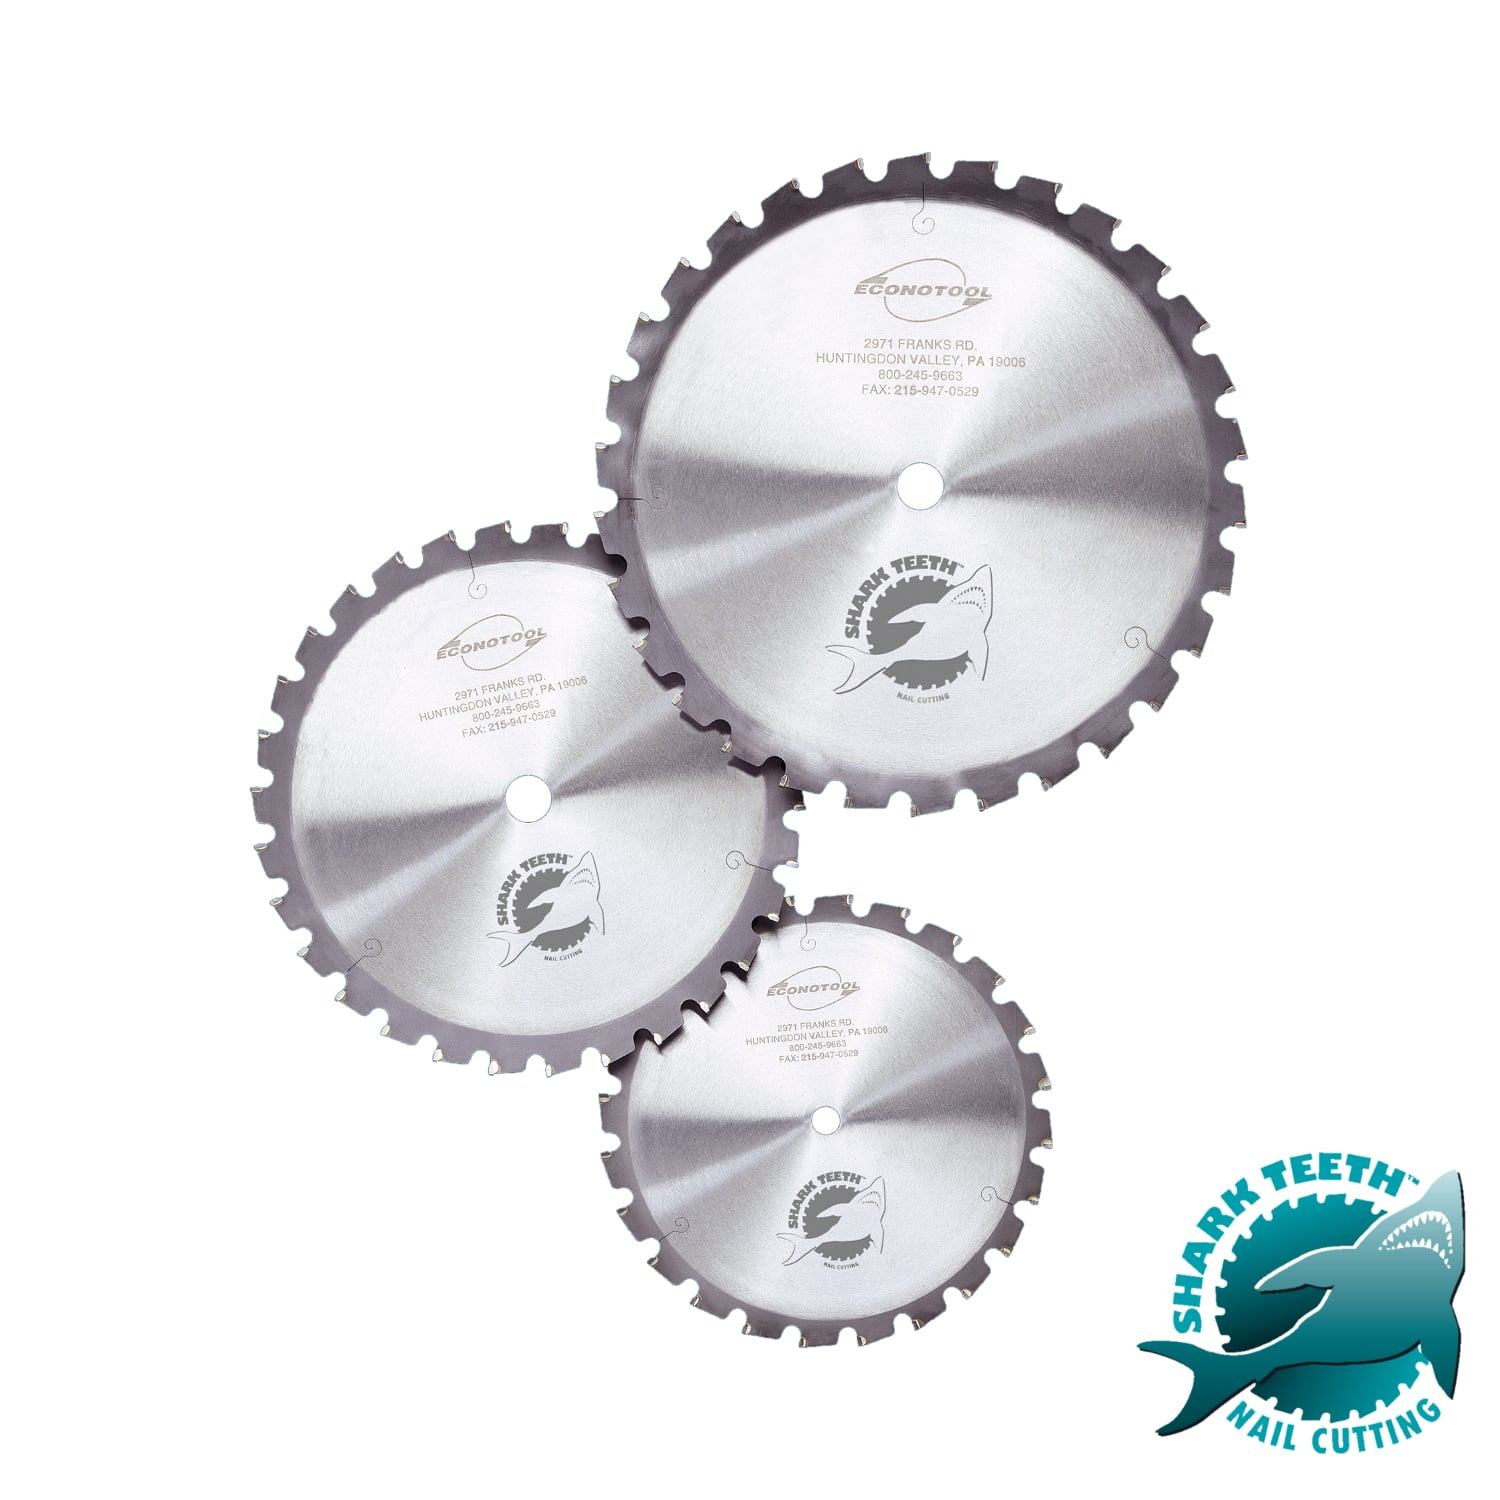 Circular Saw Blades With Shark Teeth Technology